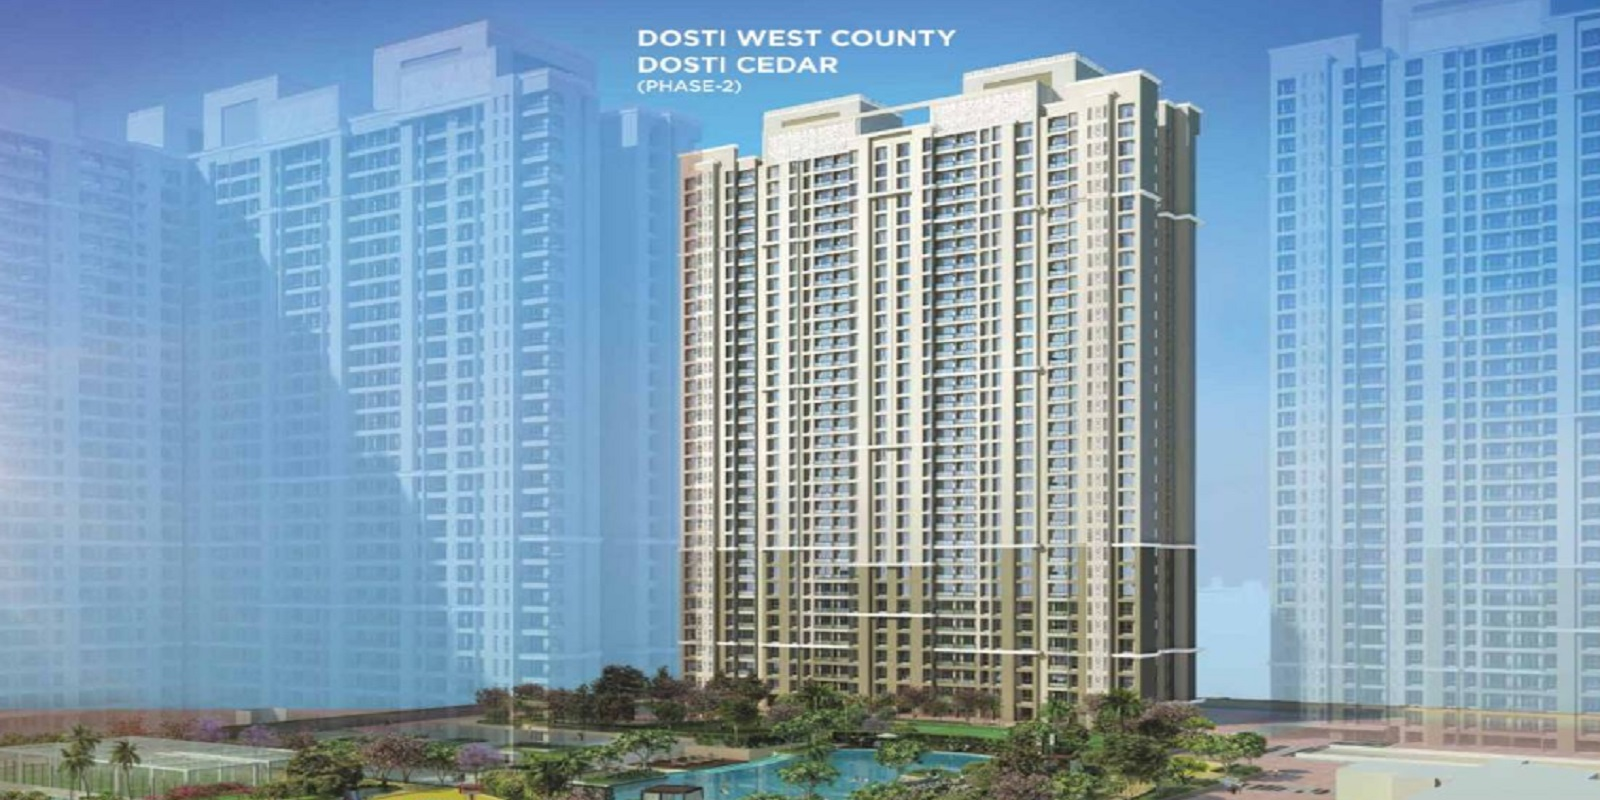 dosti west county phase 2 dosti cedar project large image2